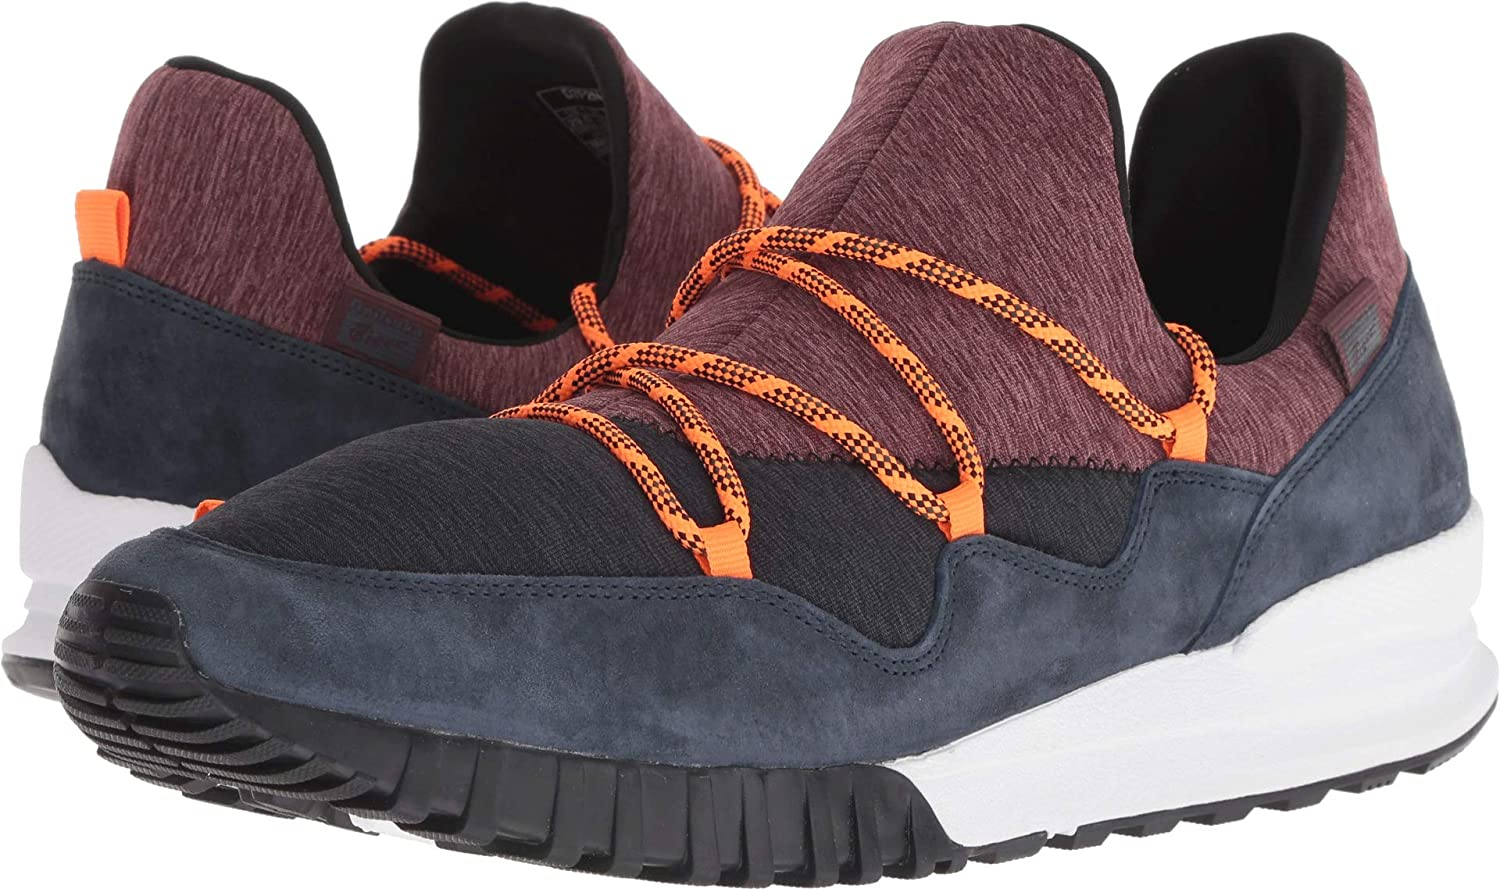 new product 38343 5012d Onitsuka Tiger by Asics Unisex Monte Creace Black/Burgundy ...